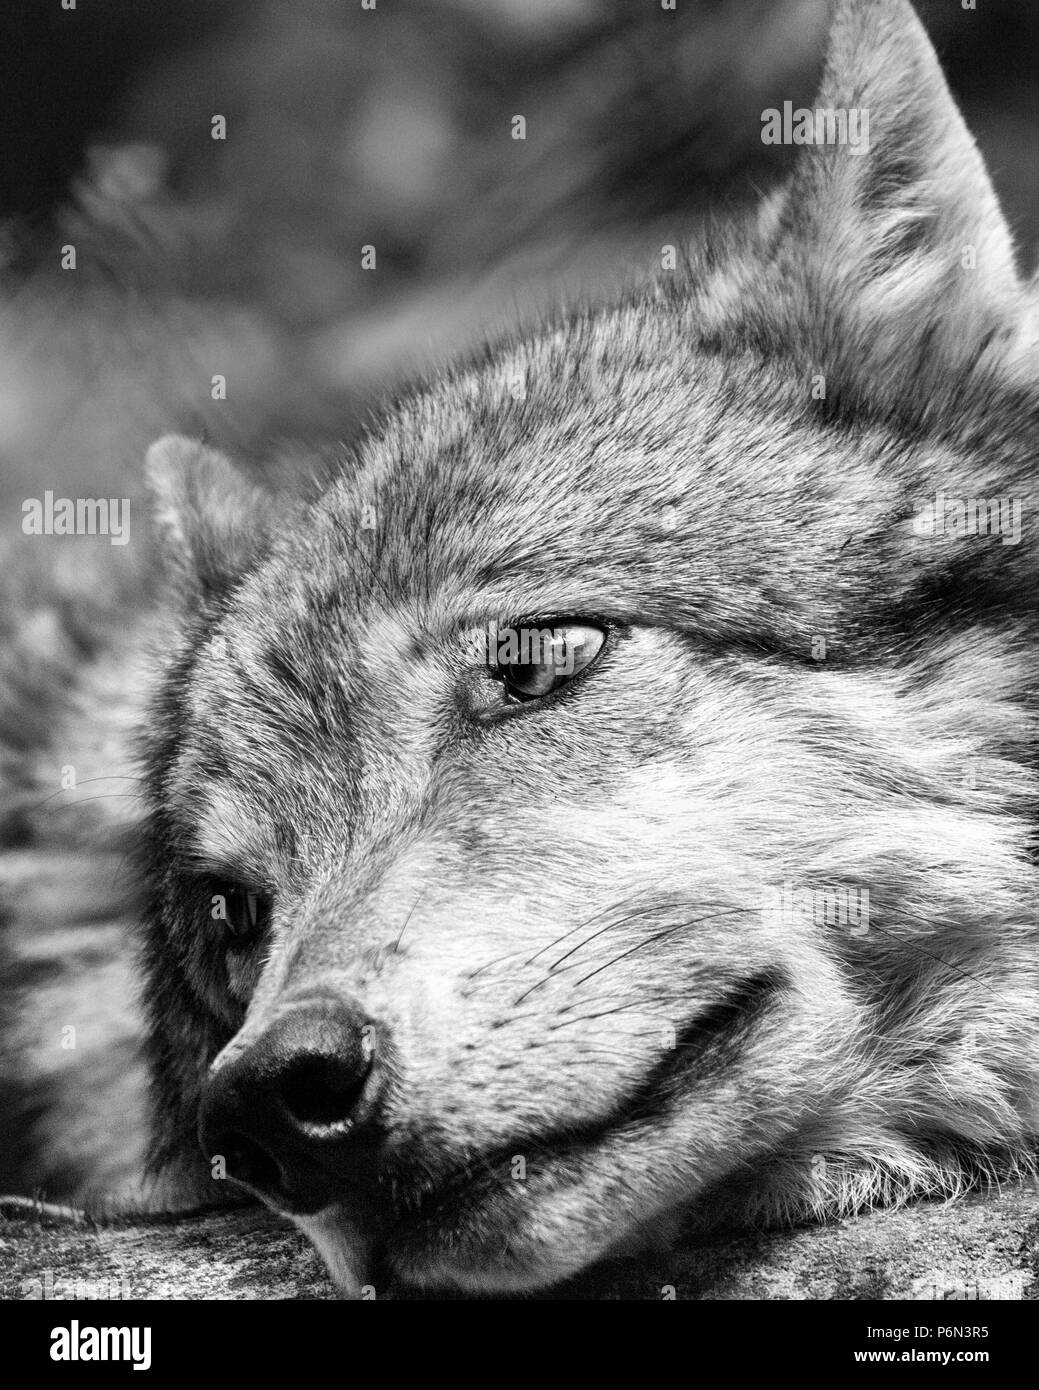 Wolf black and white stock photos images alamy